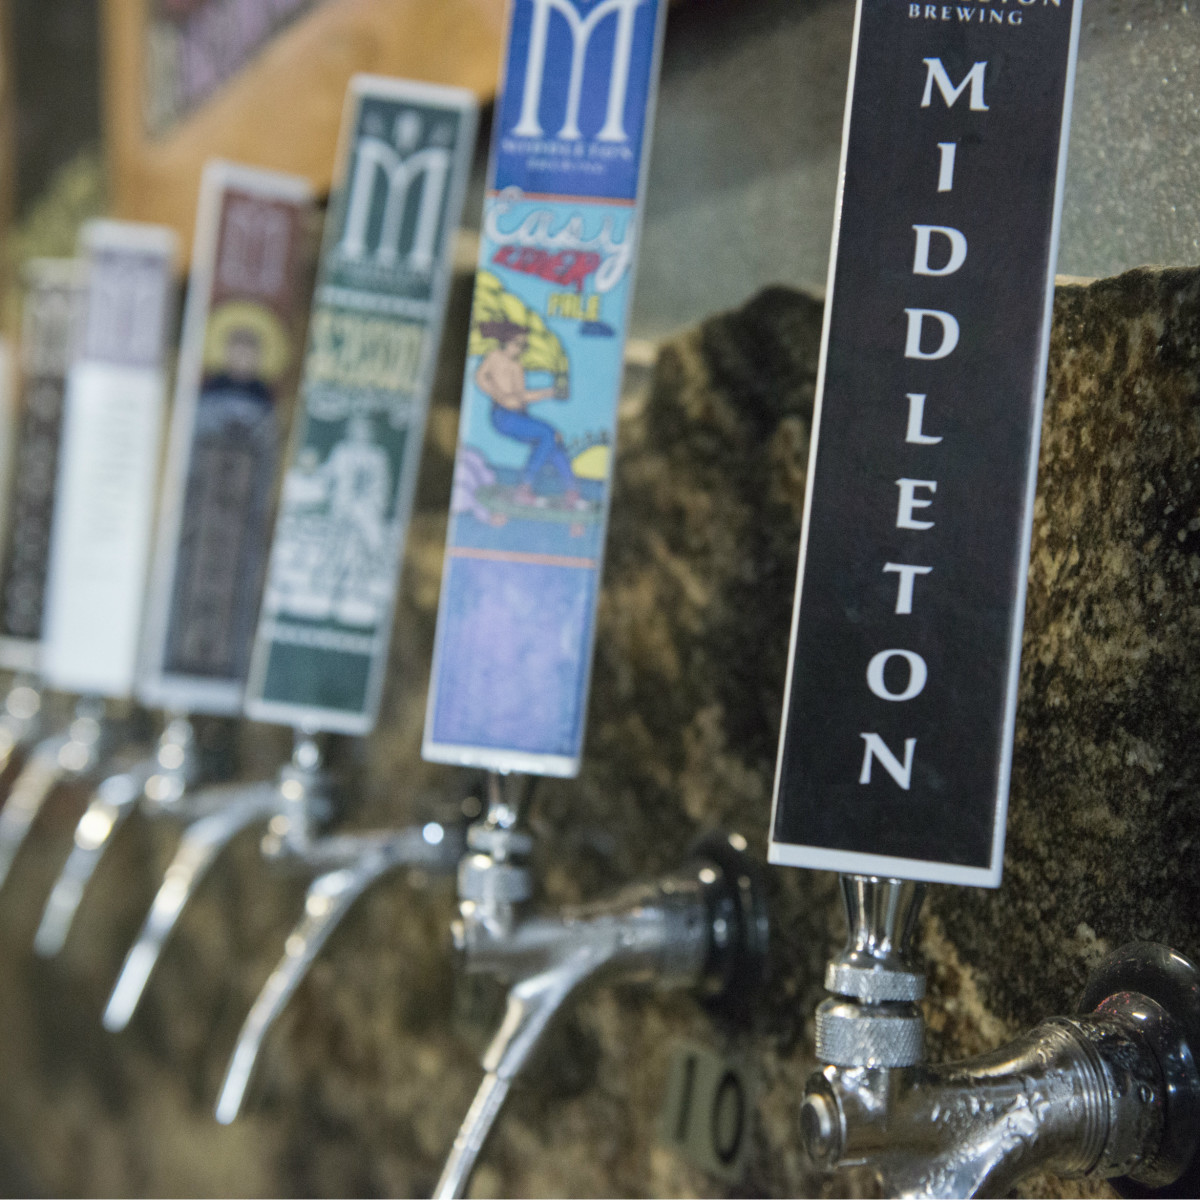 Beer taps at Middleton Brewing in San Marcos